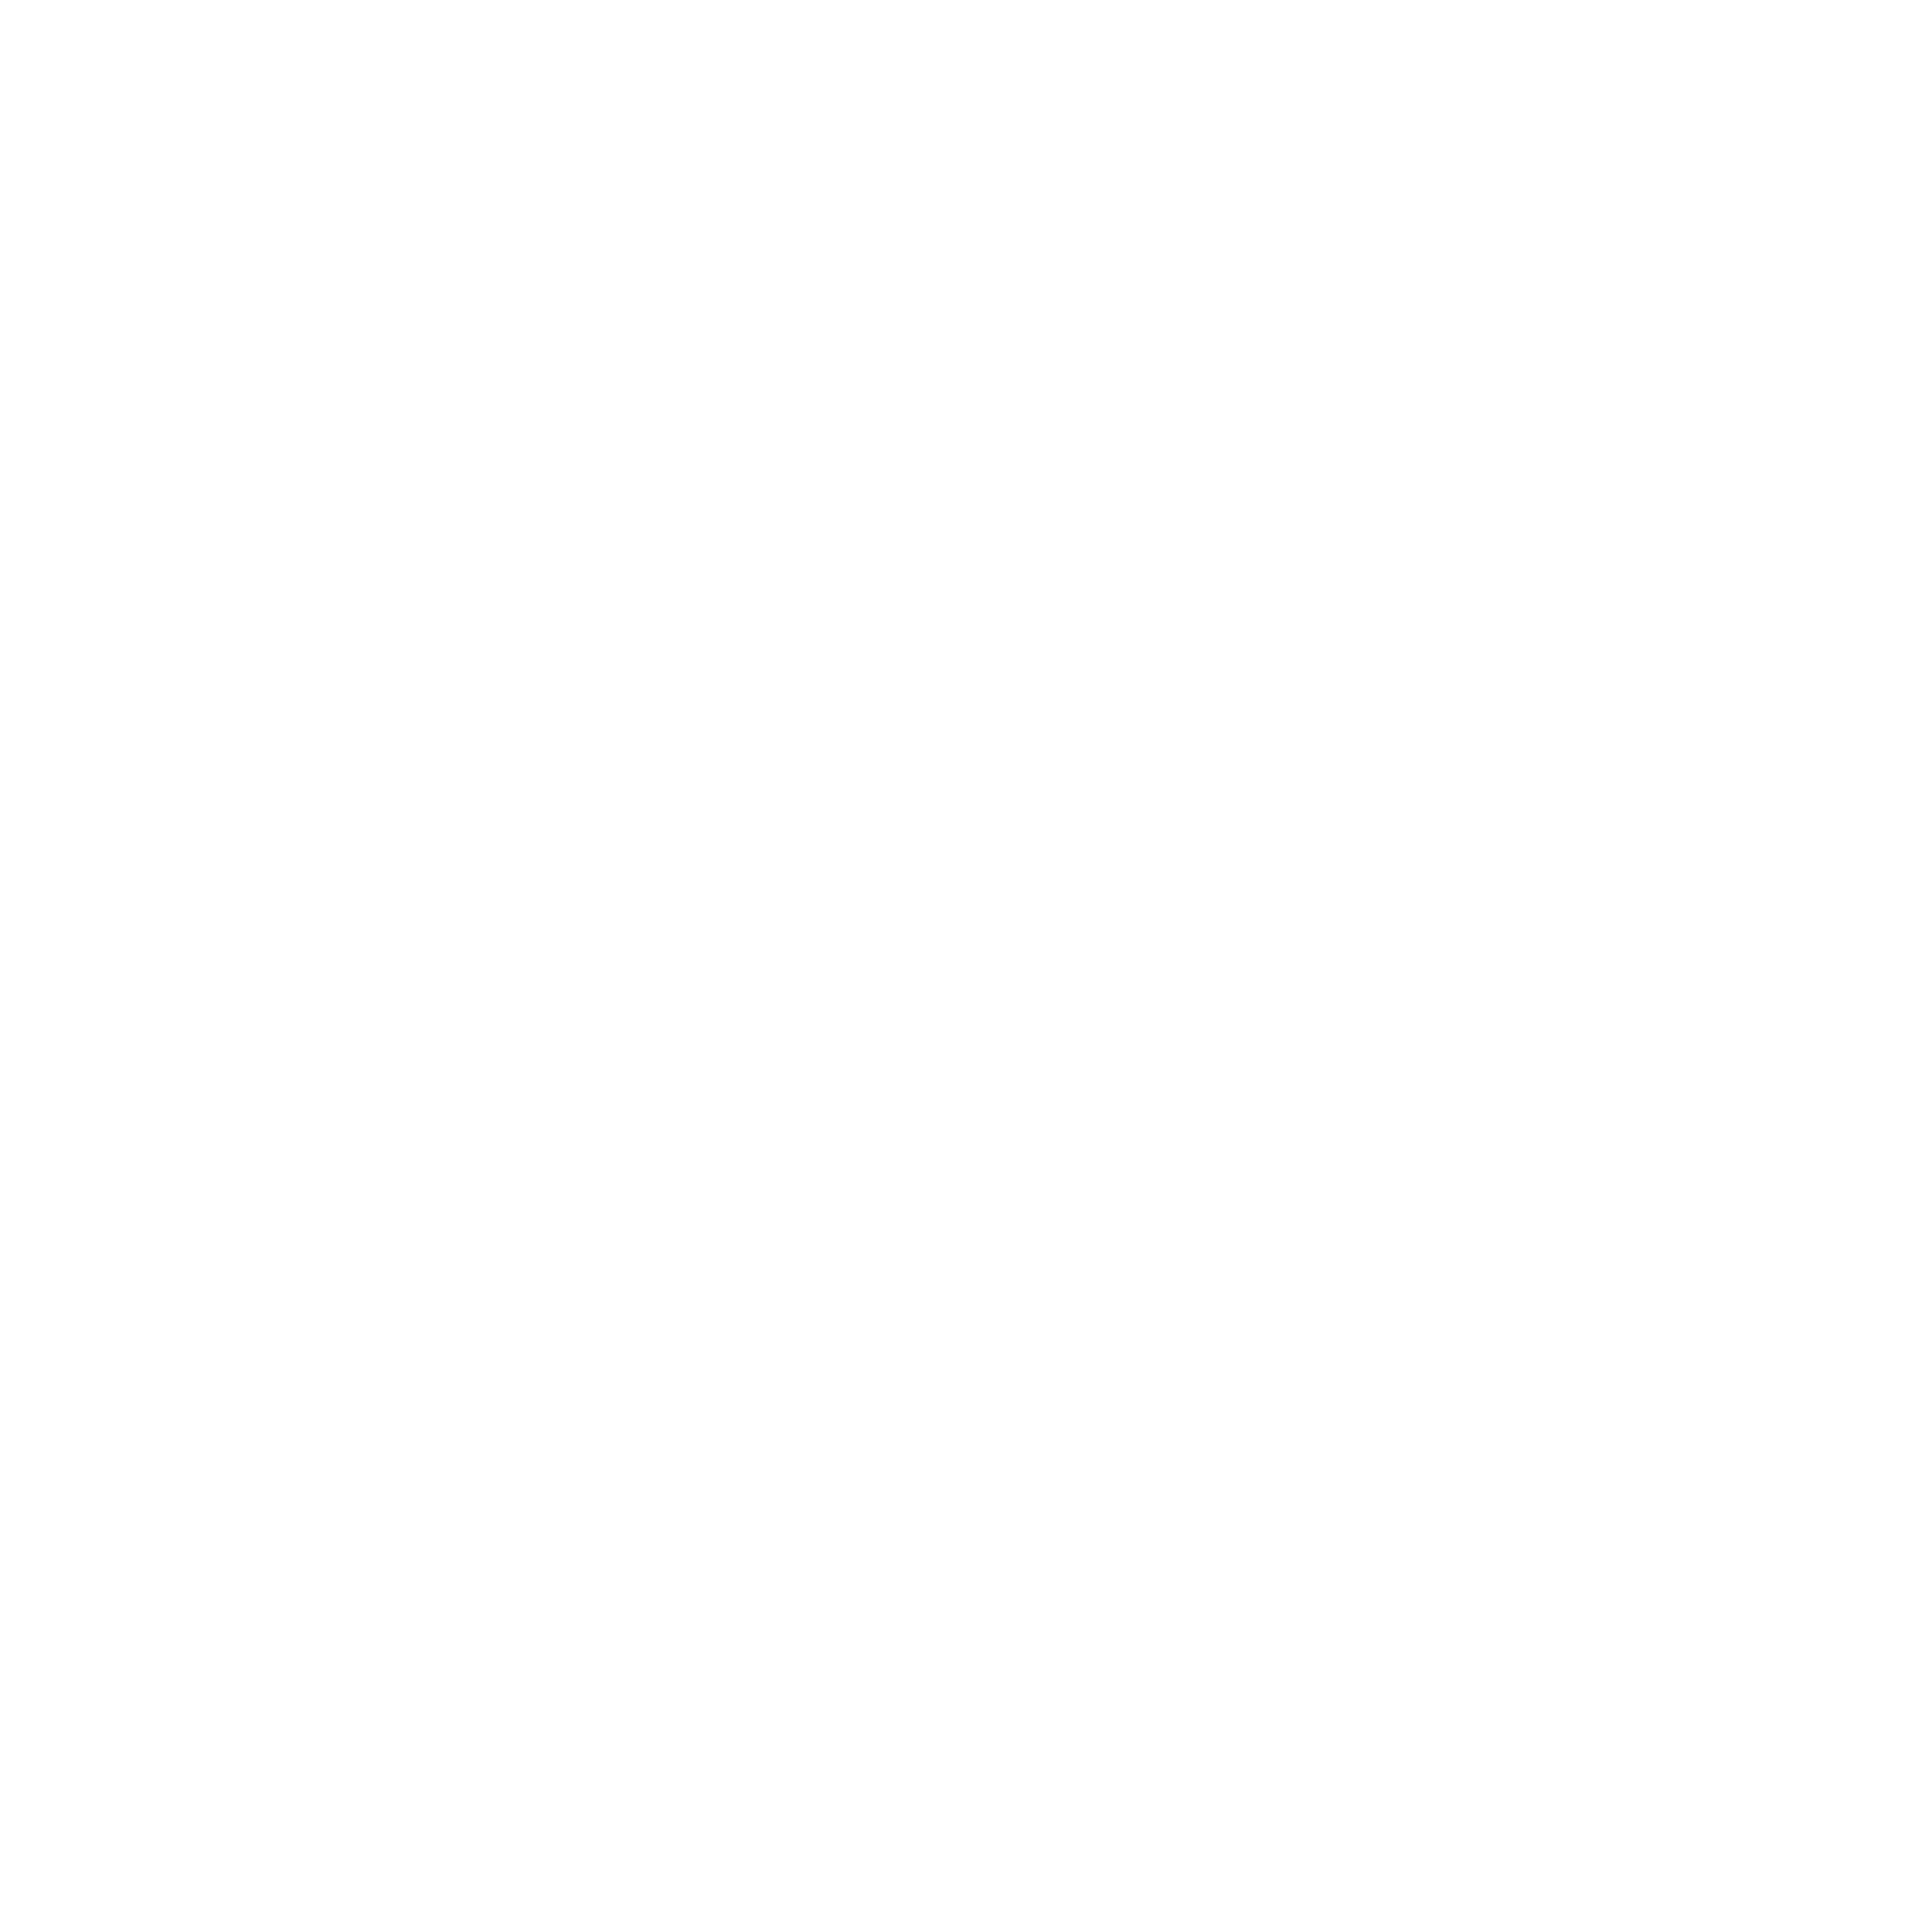 Singapore Airlines Logo PNG Transparent & SVG Vector - Freebie Supply